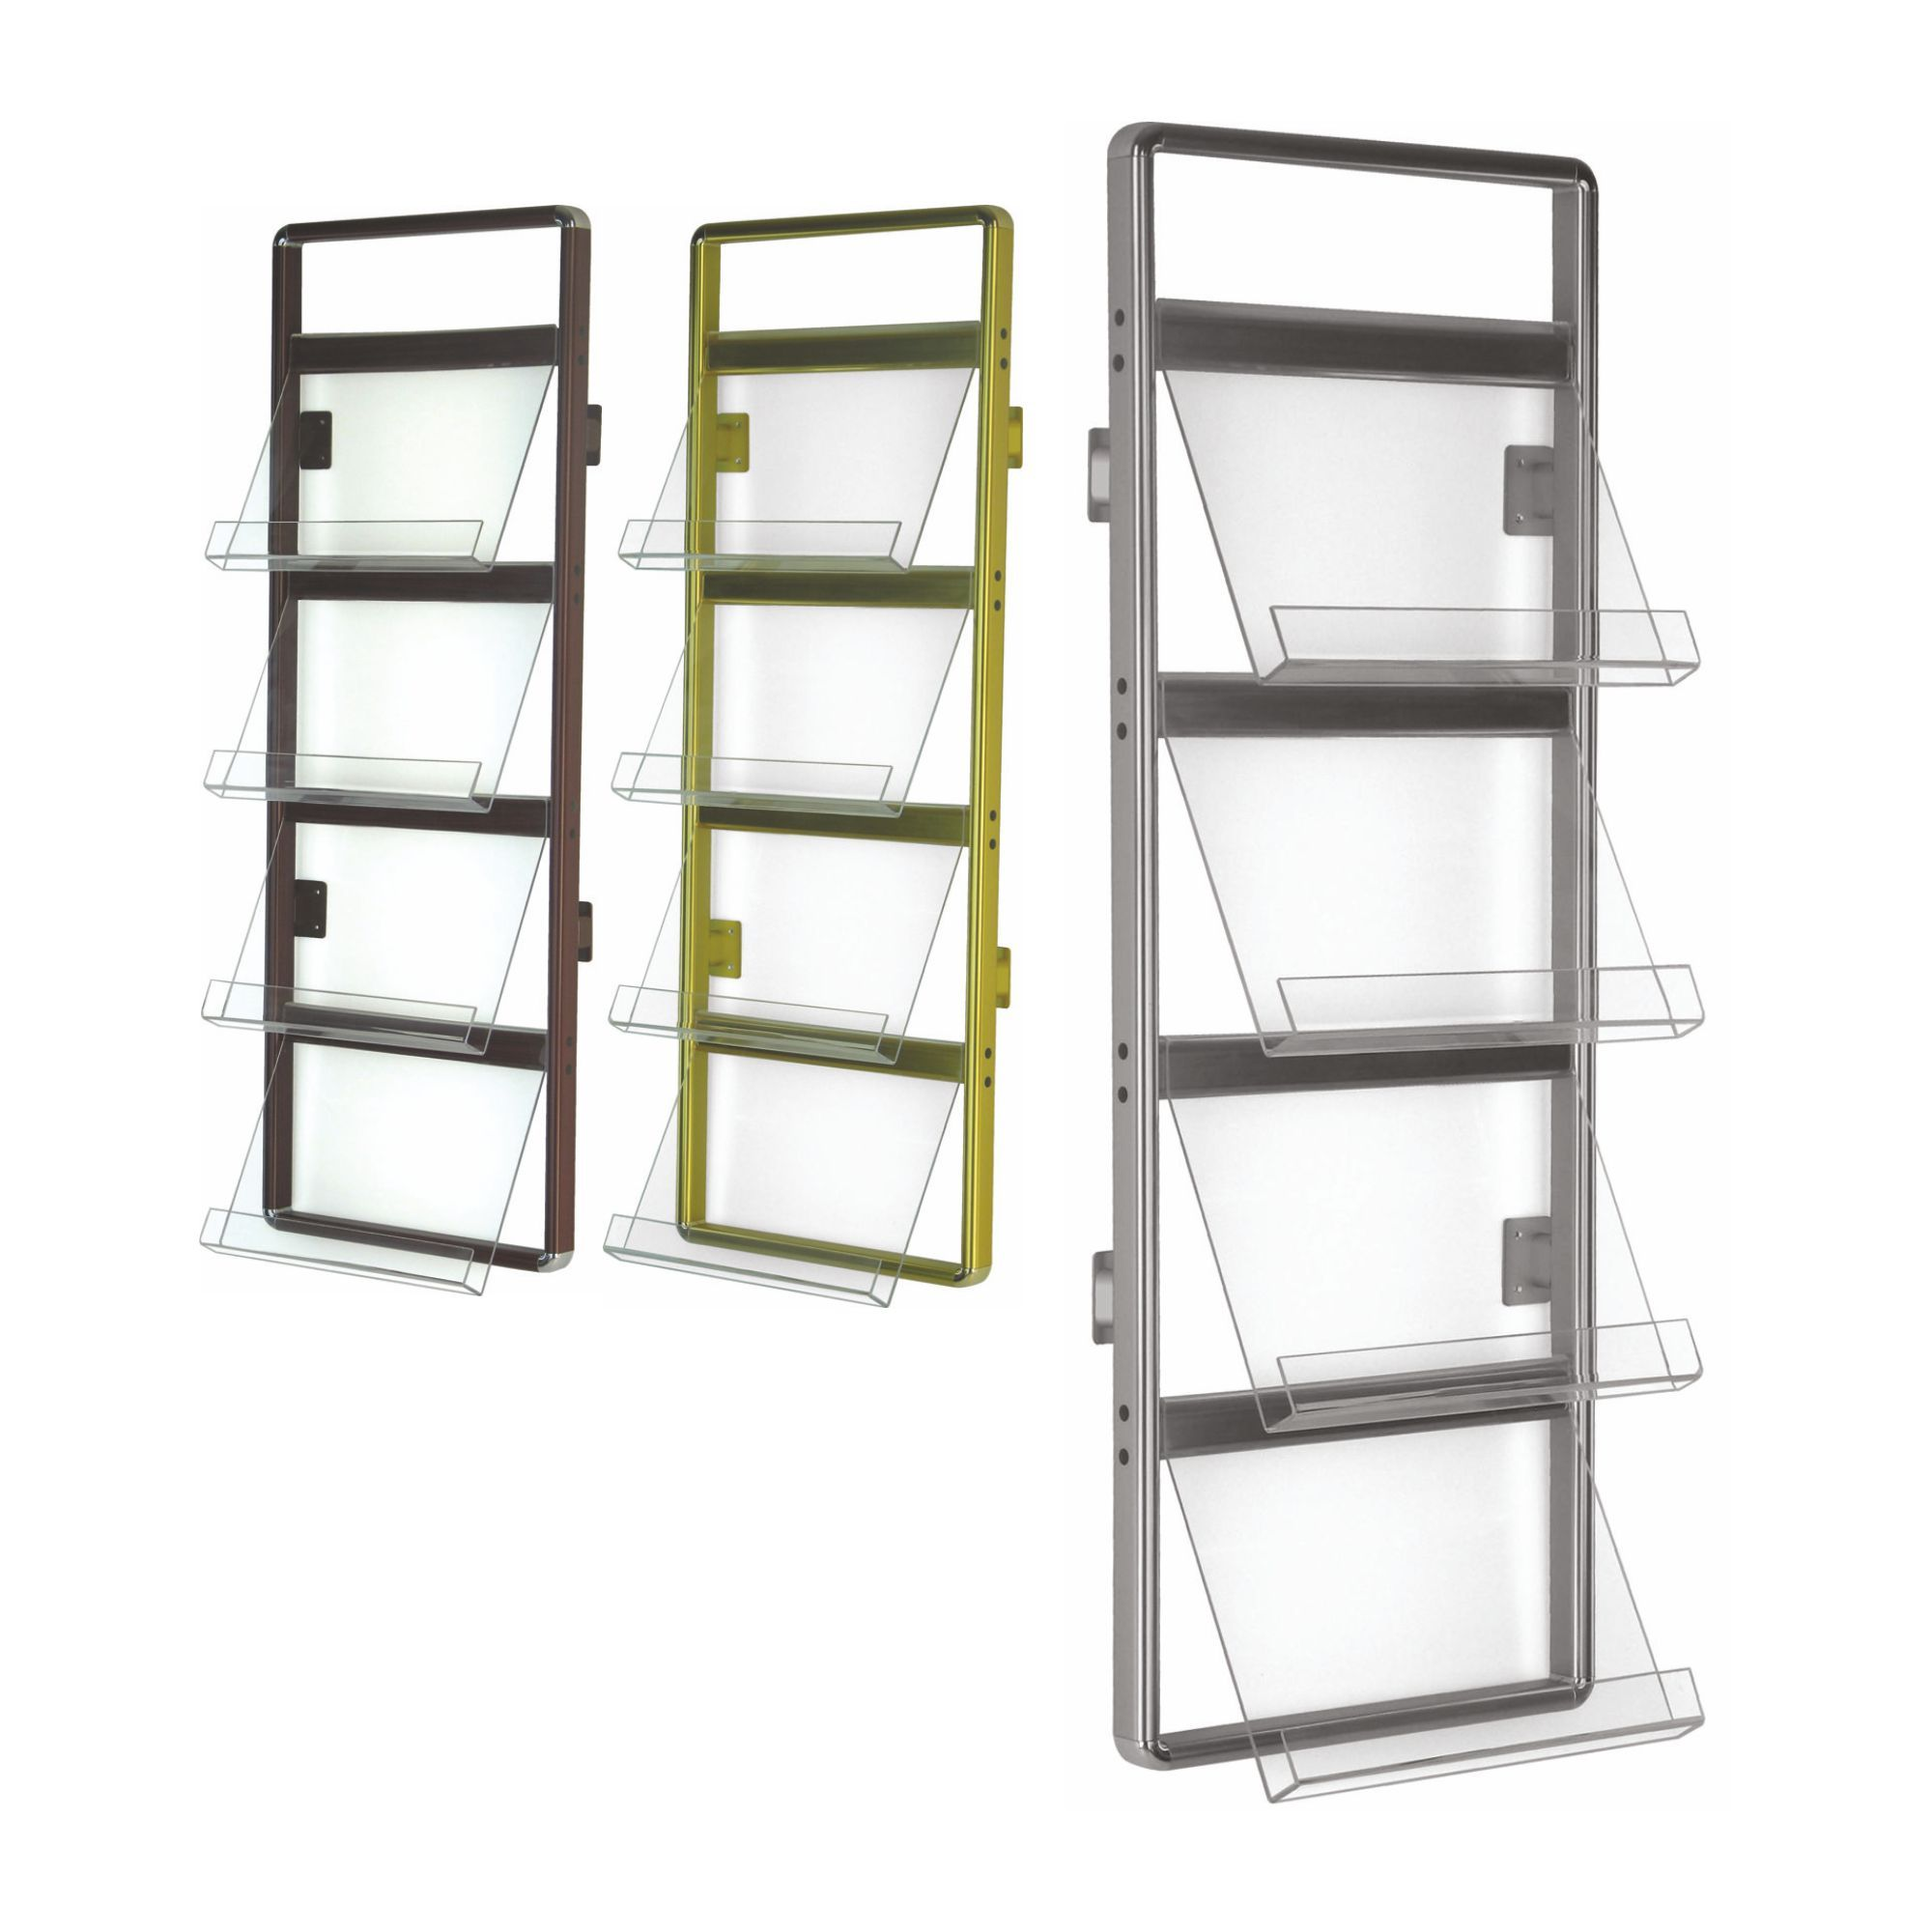 ad rack h from by display magazine stands architonic mount brochure case inno wall product en adcase